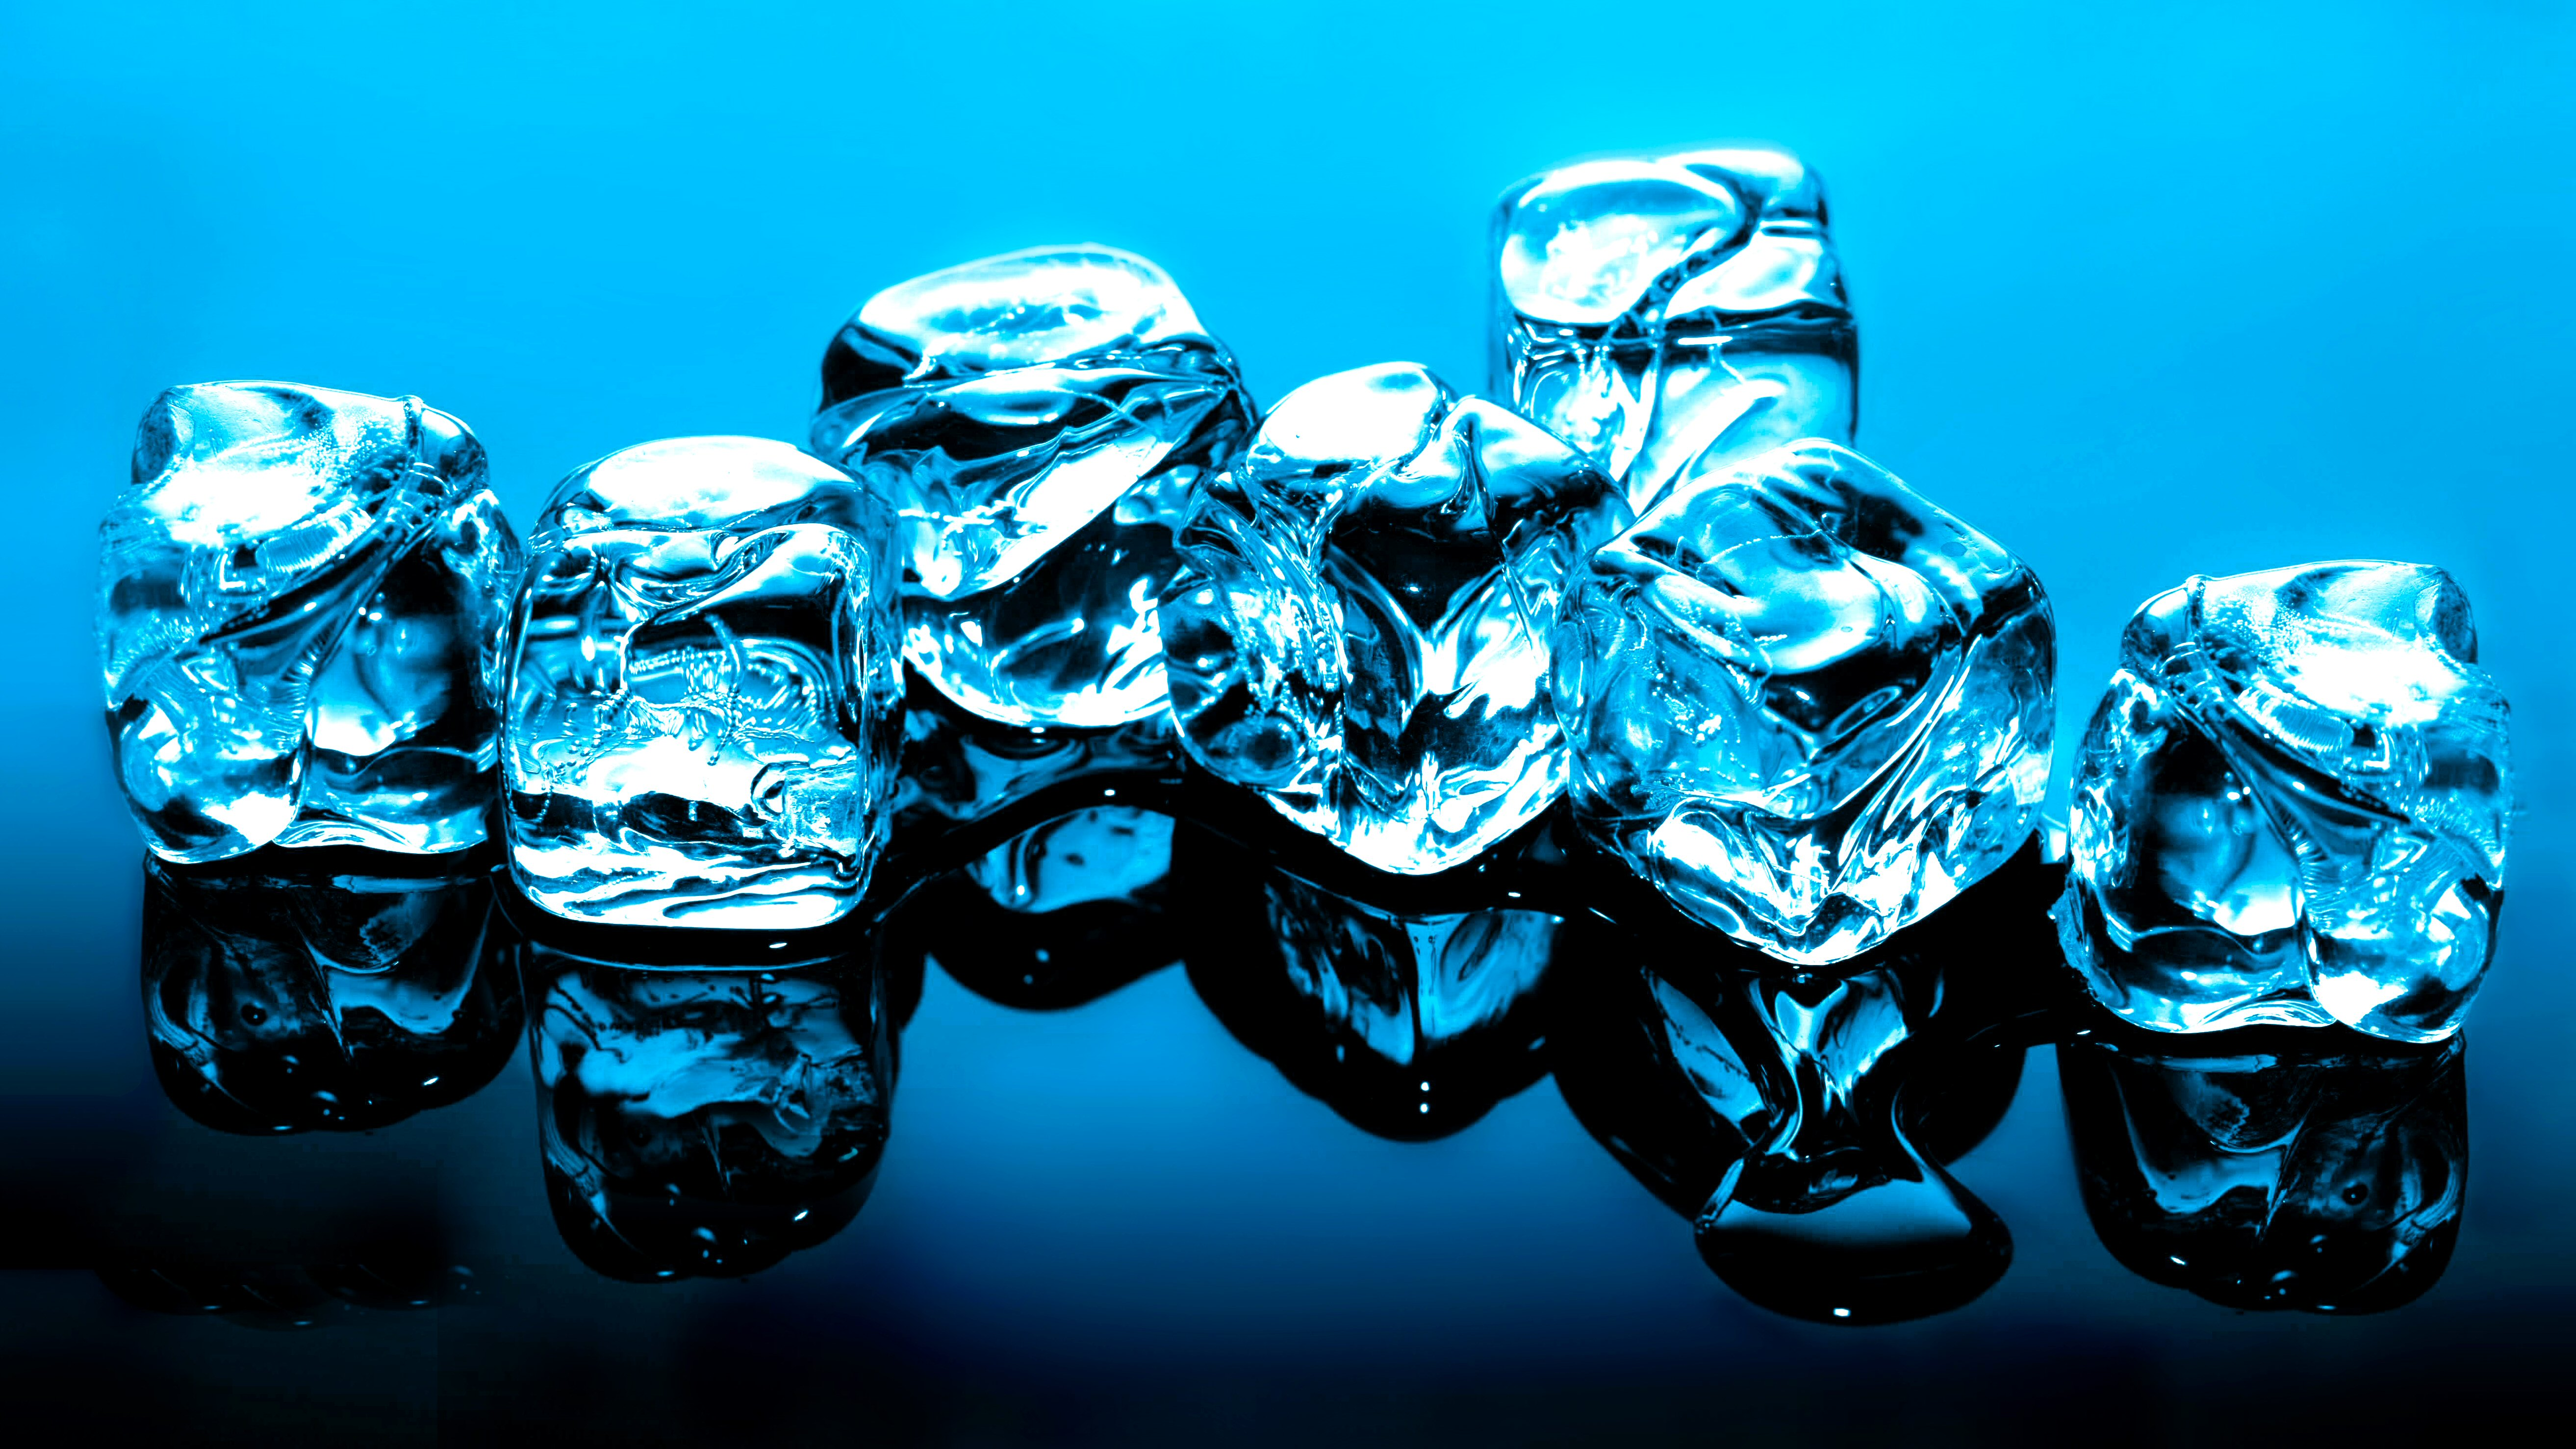 Ice Cube Photography CGI Miscellaneous Blue Highres Cube Wallpaper 5253x2955